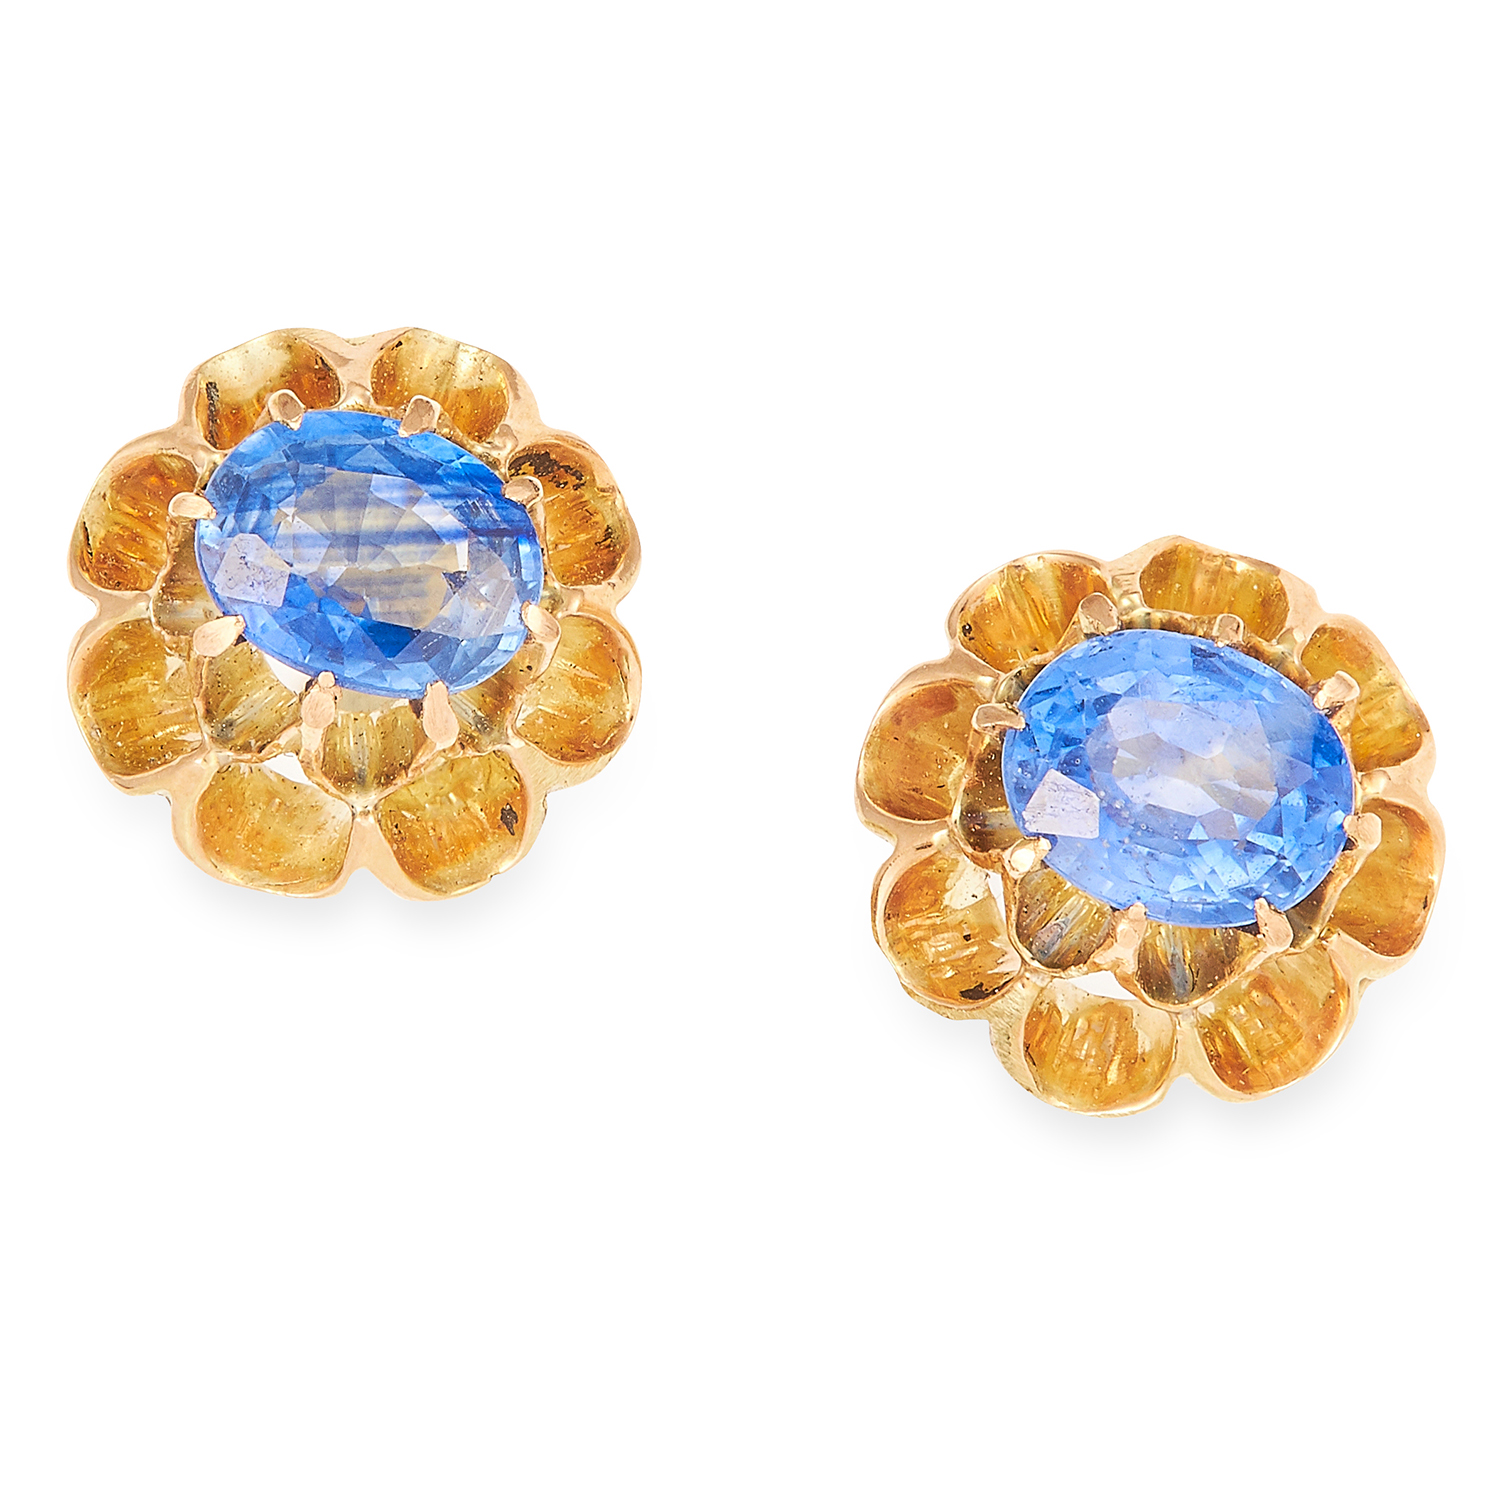 1.06 CARAT SAPPHIRE EARRINGS in yellow gold, each set with an oval cut sapphire totalling